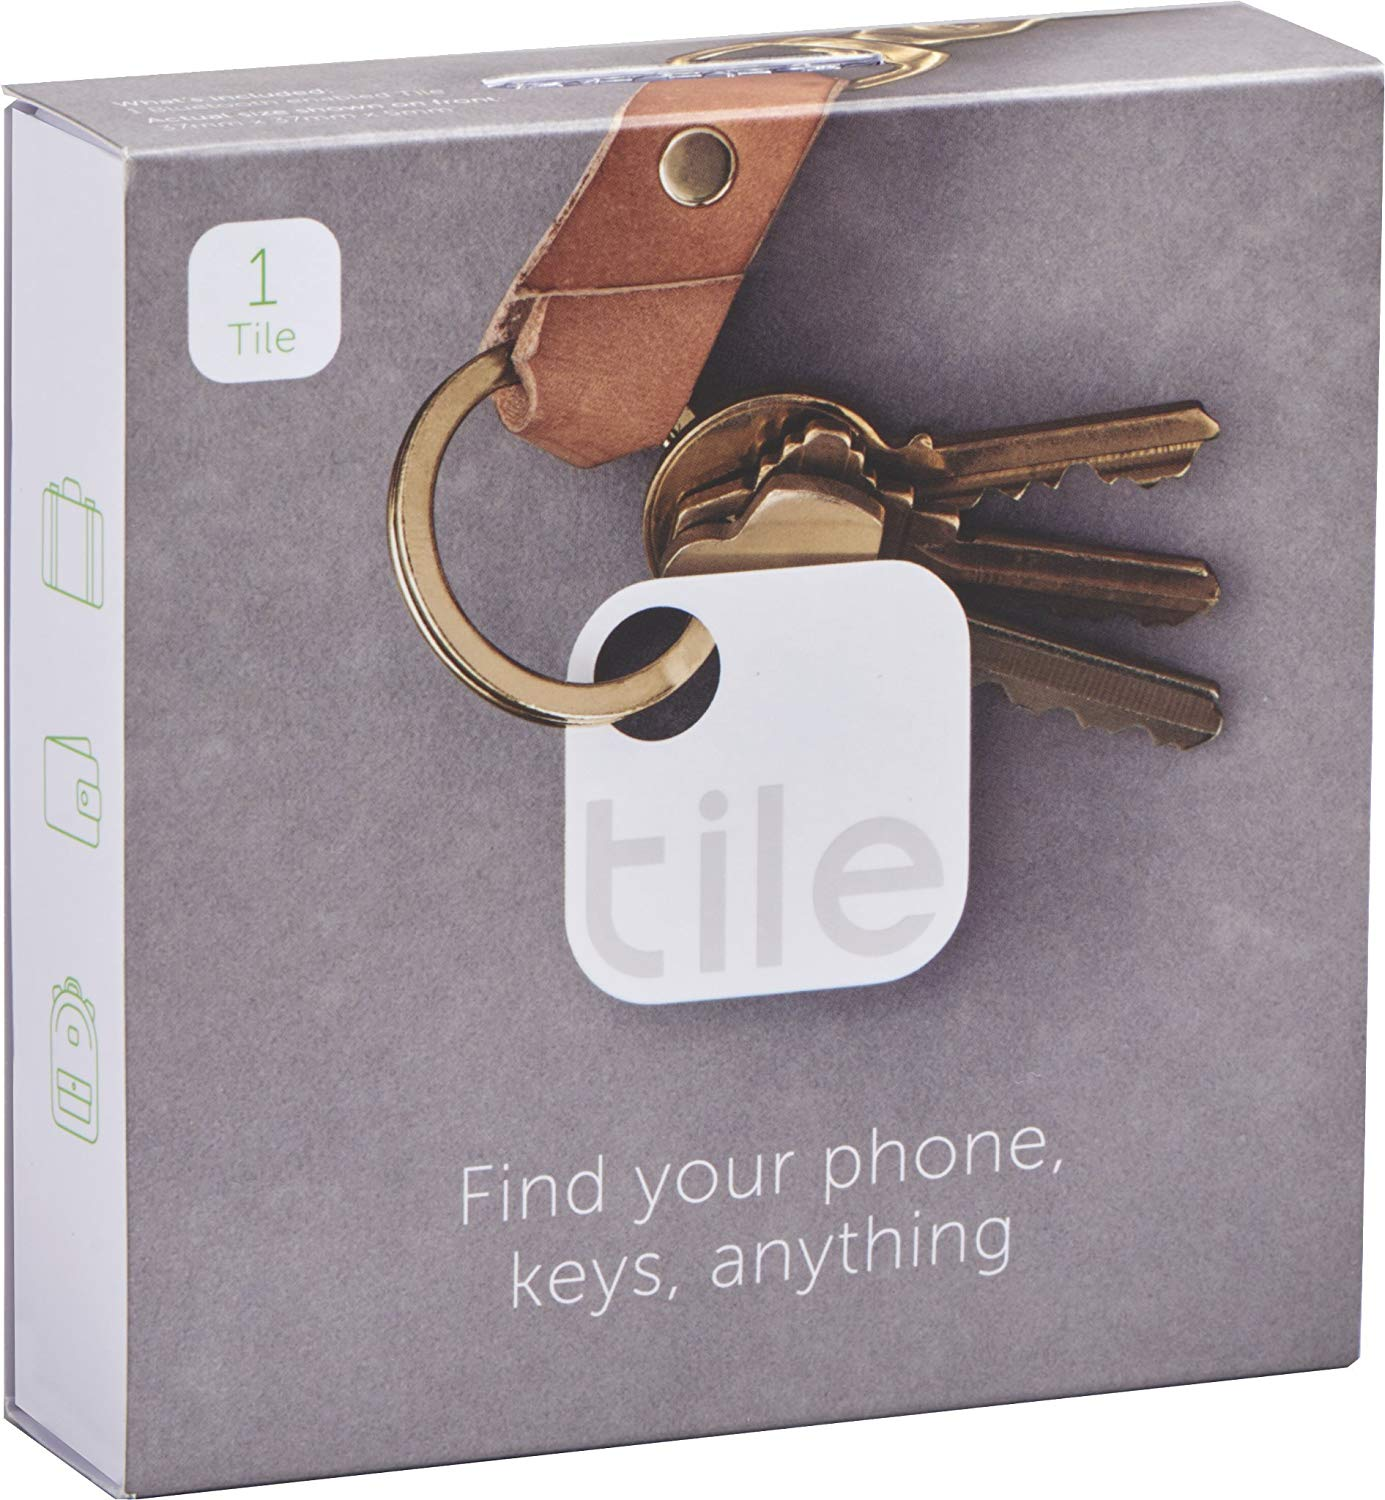 Tile Bluetooth Item Finder/Tracker for iPhone and Android Phone